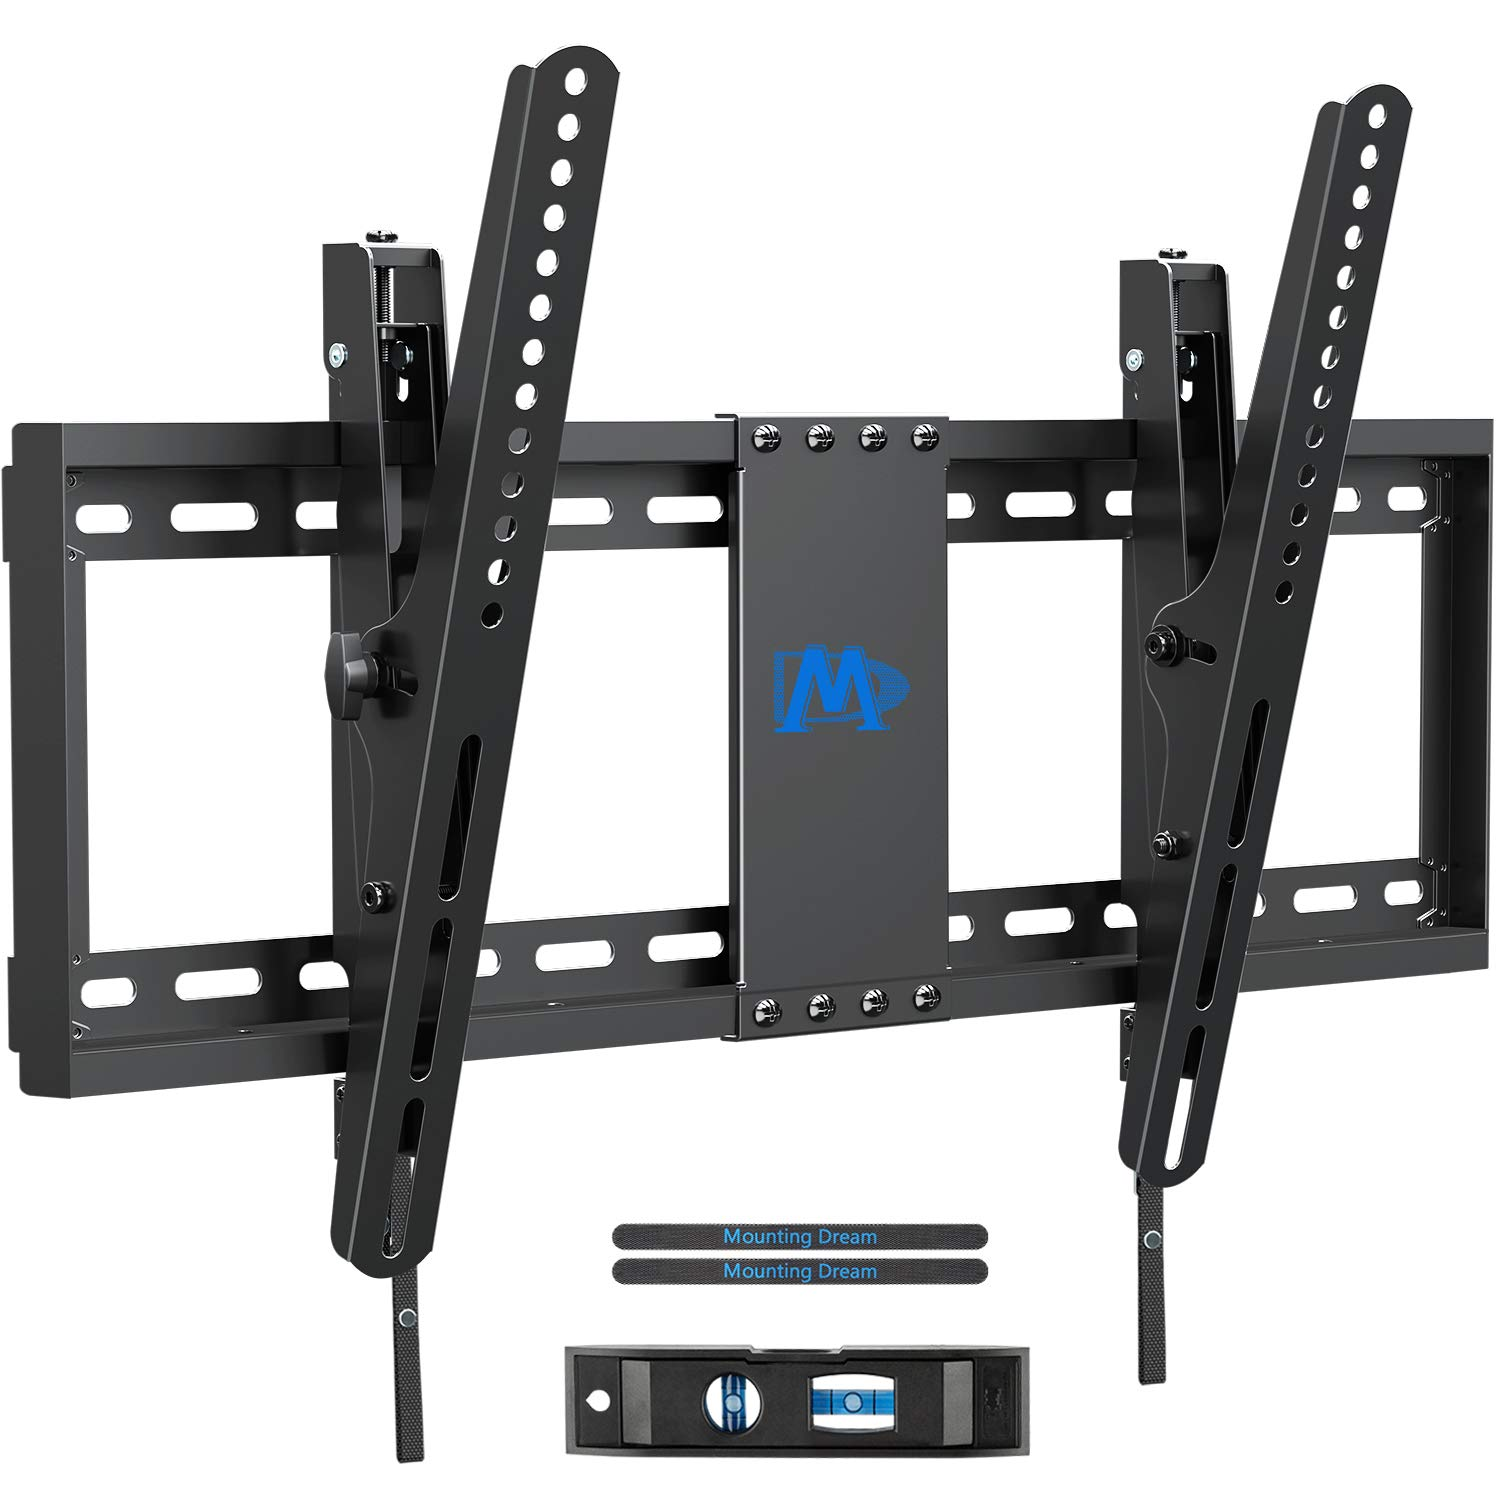 Mounting Dream TV Wall Mount with Post Installation Leveling for Most 37-70'' Flat-Panel TVs, Tilting TV Mount up to 132lbs, VESA 600x400mm, Low Profile TV Wall Mount Bracket Fits 16''- 24'' Wood Studs by Mounting Dream